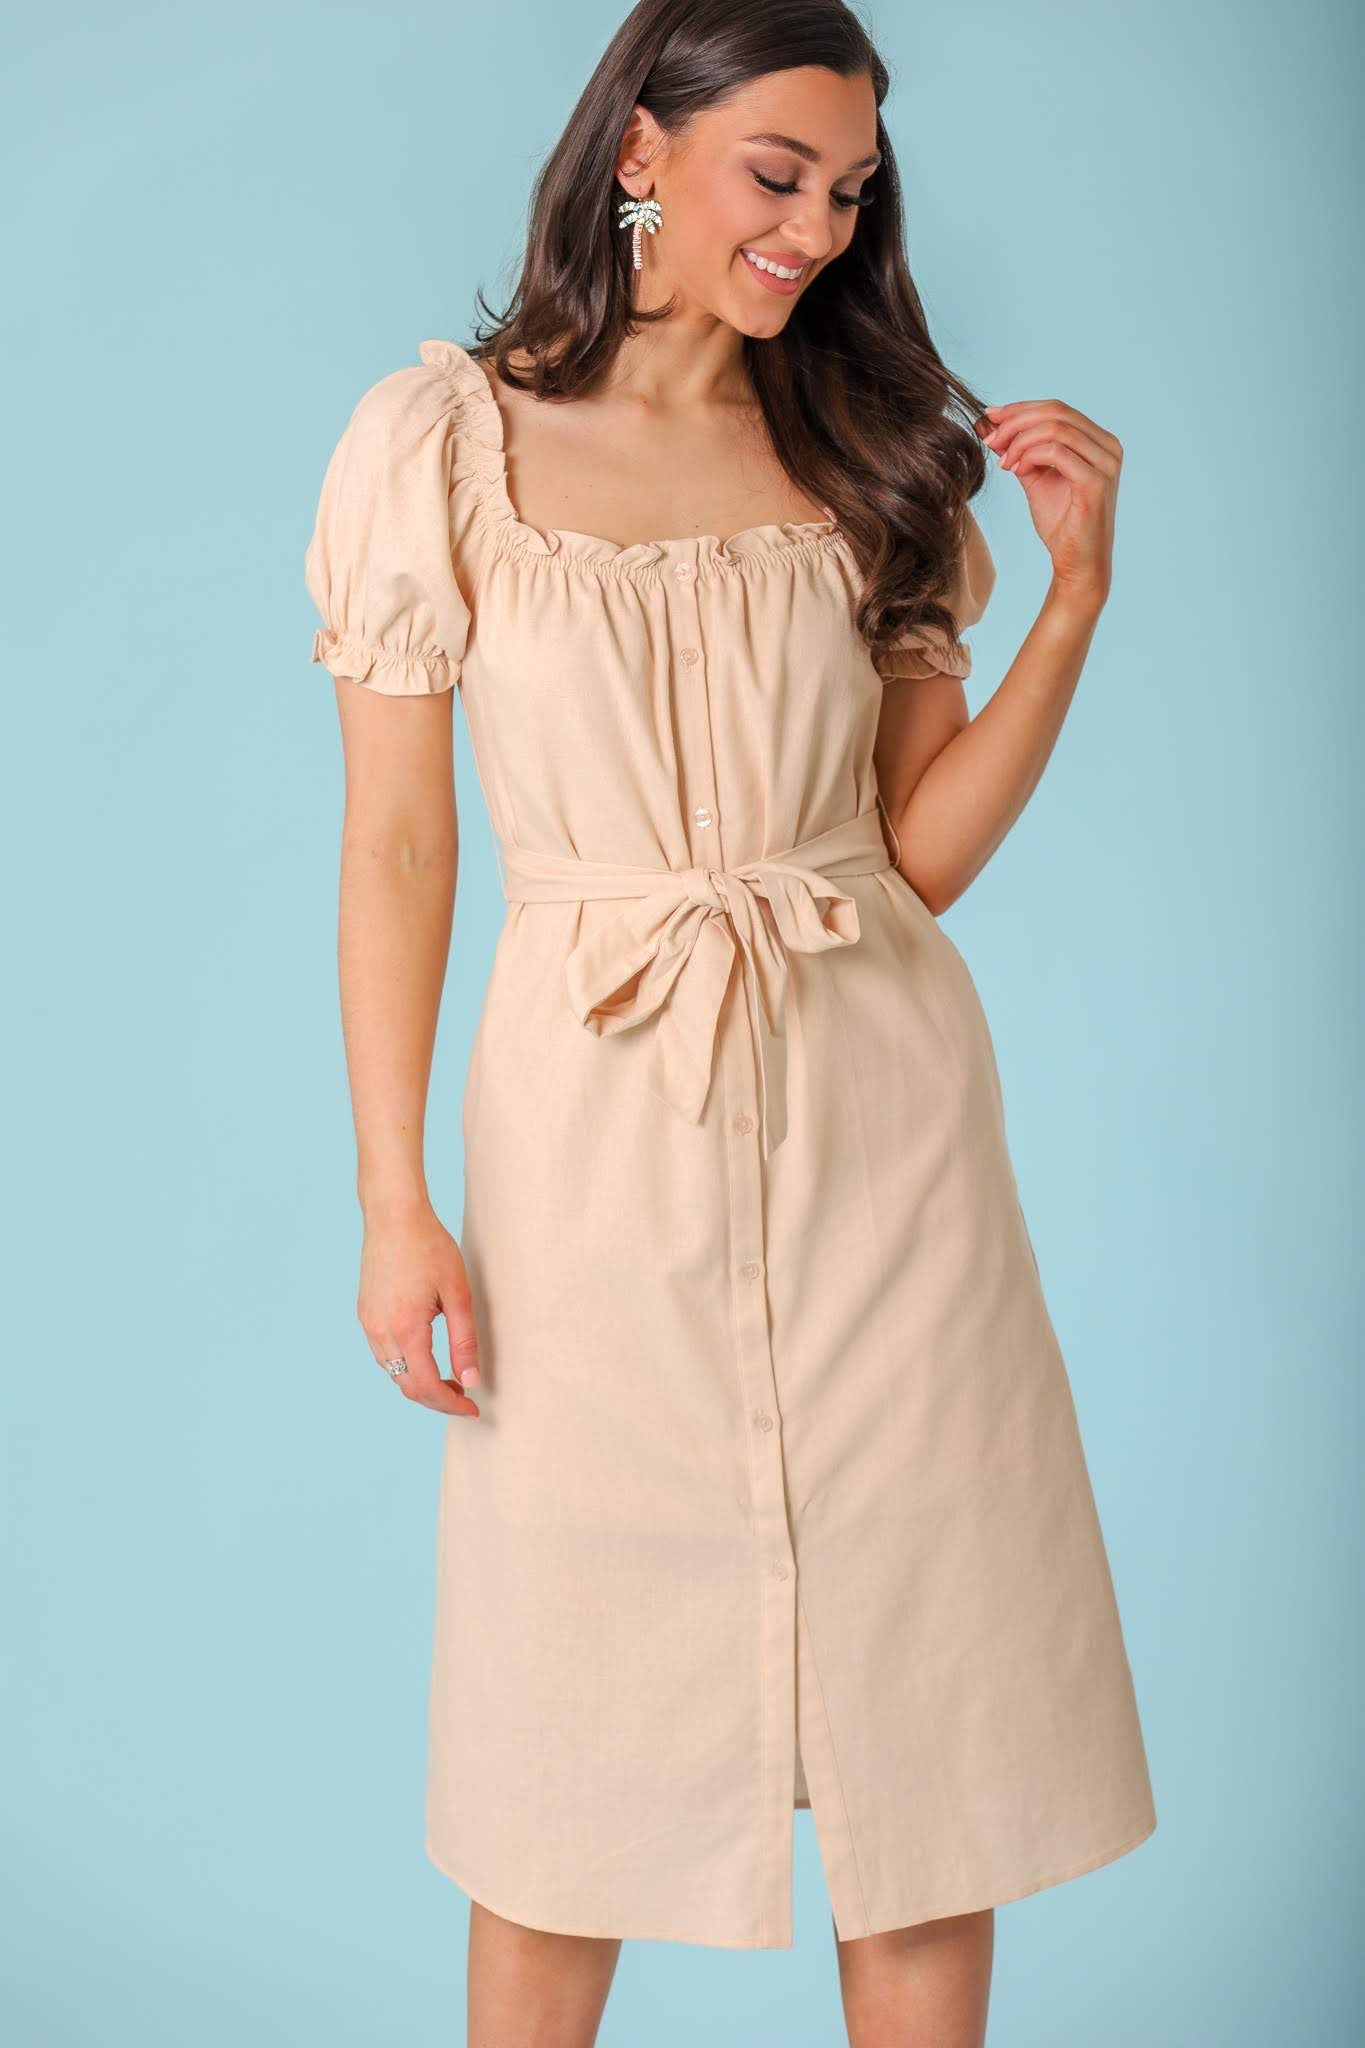 Walk in the Sand Button Down Puff Sleeve Midi Dress - Dresses - Wight Elephant Boutique